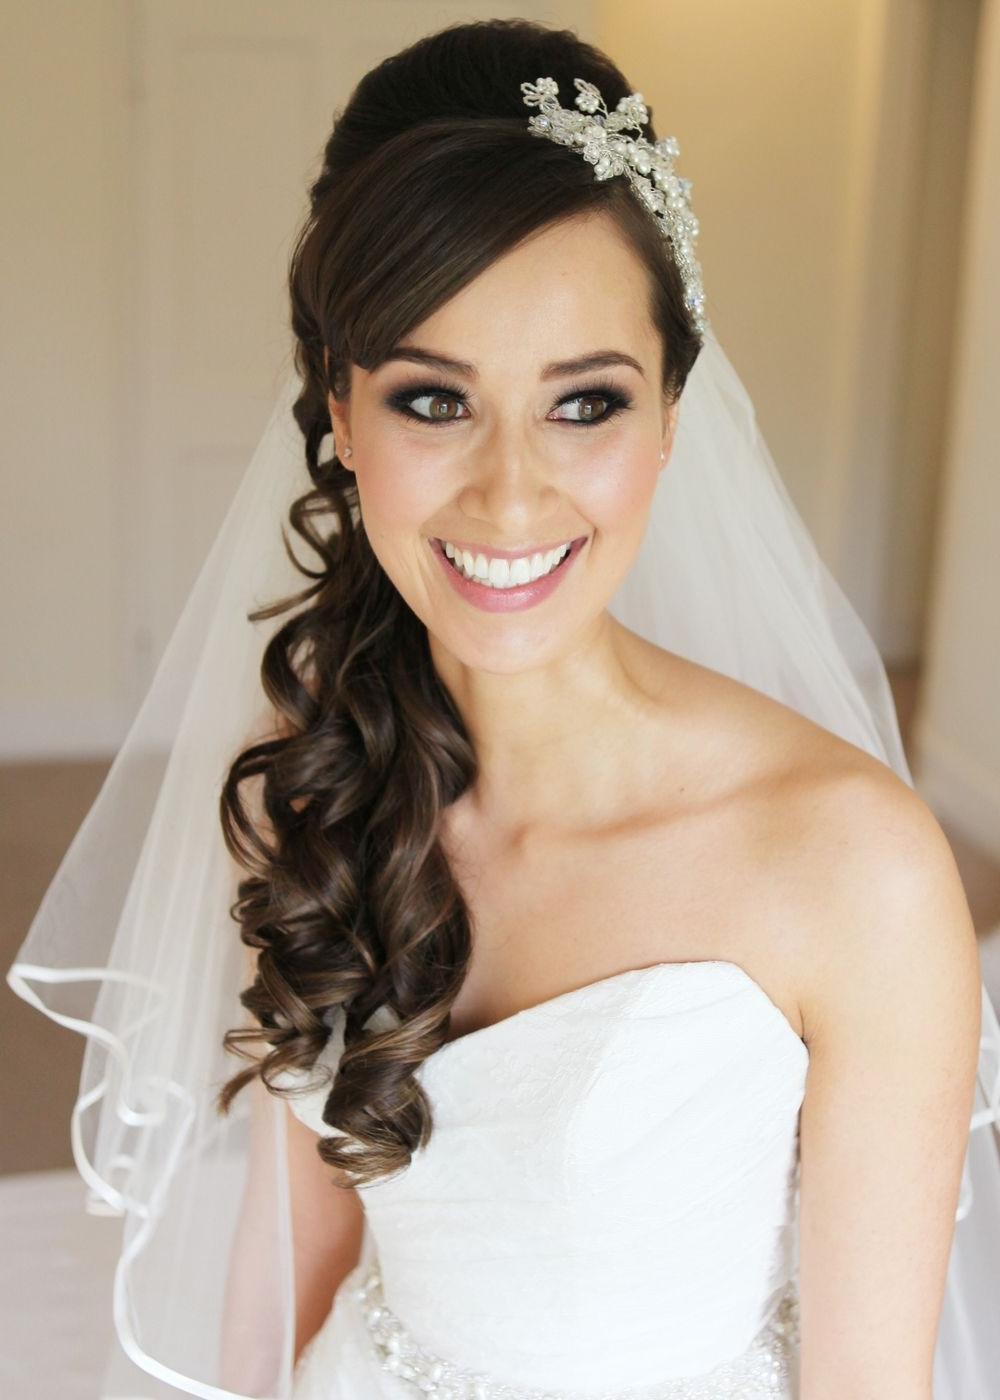 2017 Wedding Hairstyles For Long Hair With Fascinator Intended For 15 Fabulous Half Up Half Down Wedding Hairstyles (View 1 of 15)